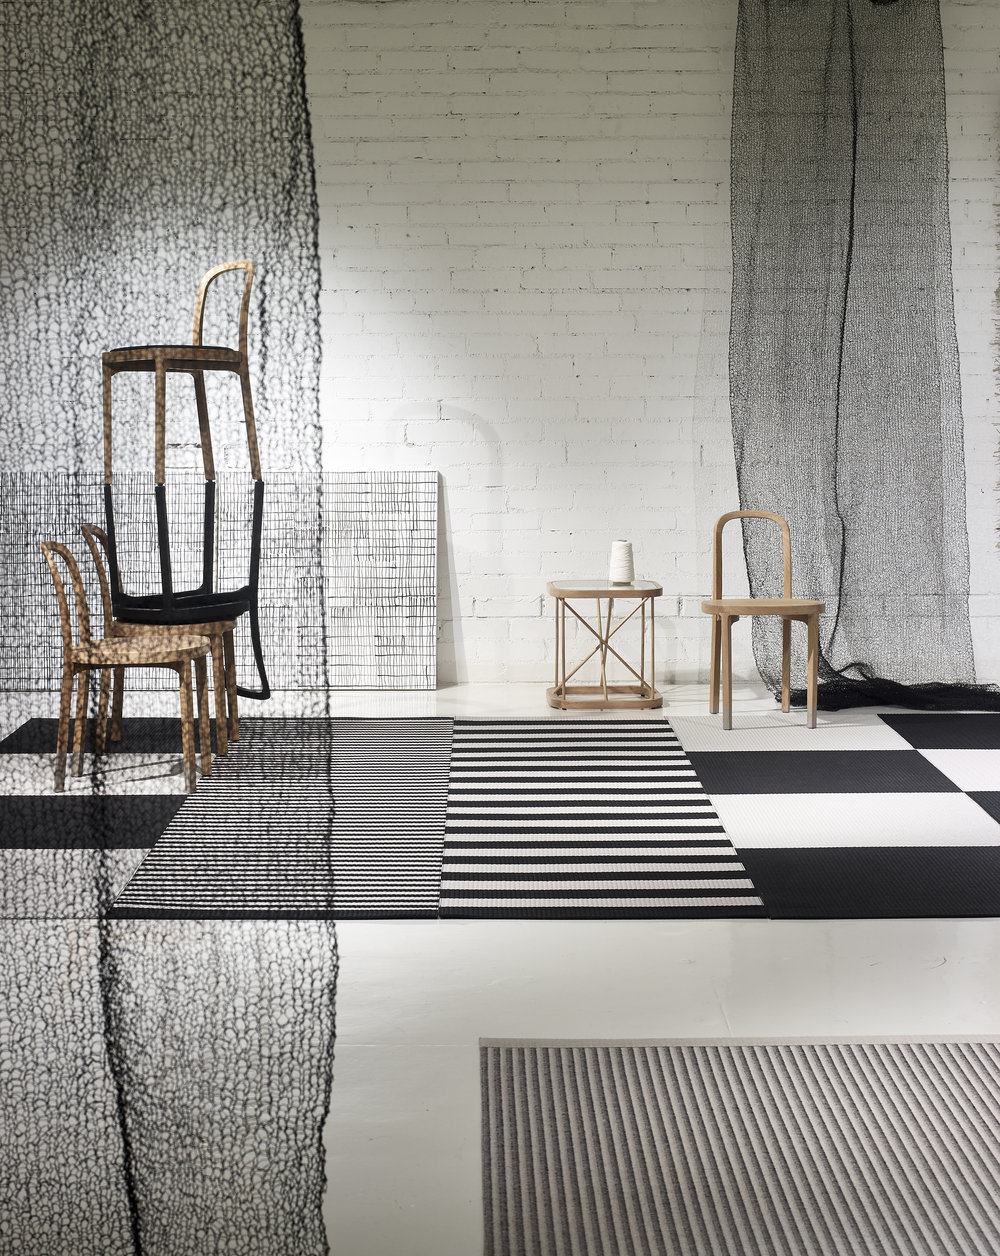 Woodnotes inspiration:  Squareplay  paper yarn carpets together with  Big Stripe  and Stripe carpets, 4400  Siro+  oak chairs, 46700W Twiggy table, Mesh hand knitted curtains.